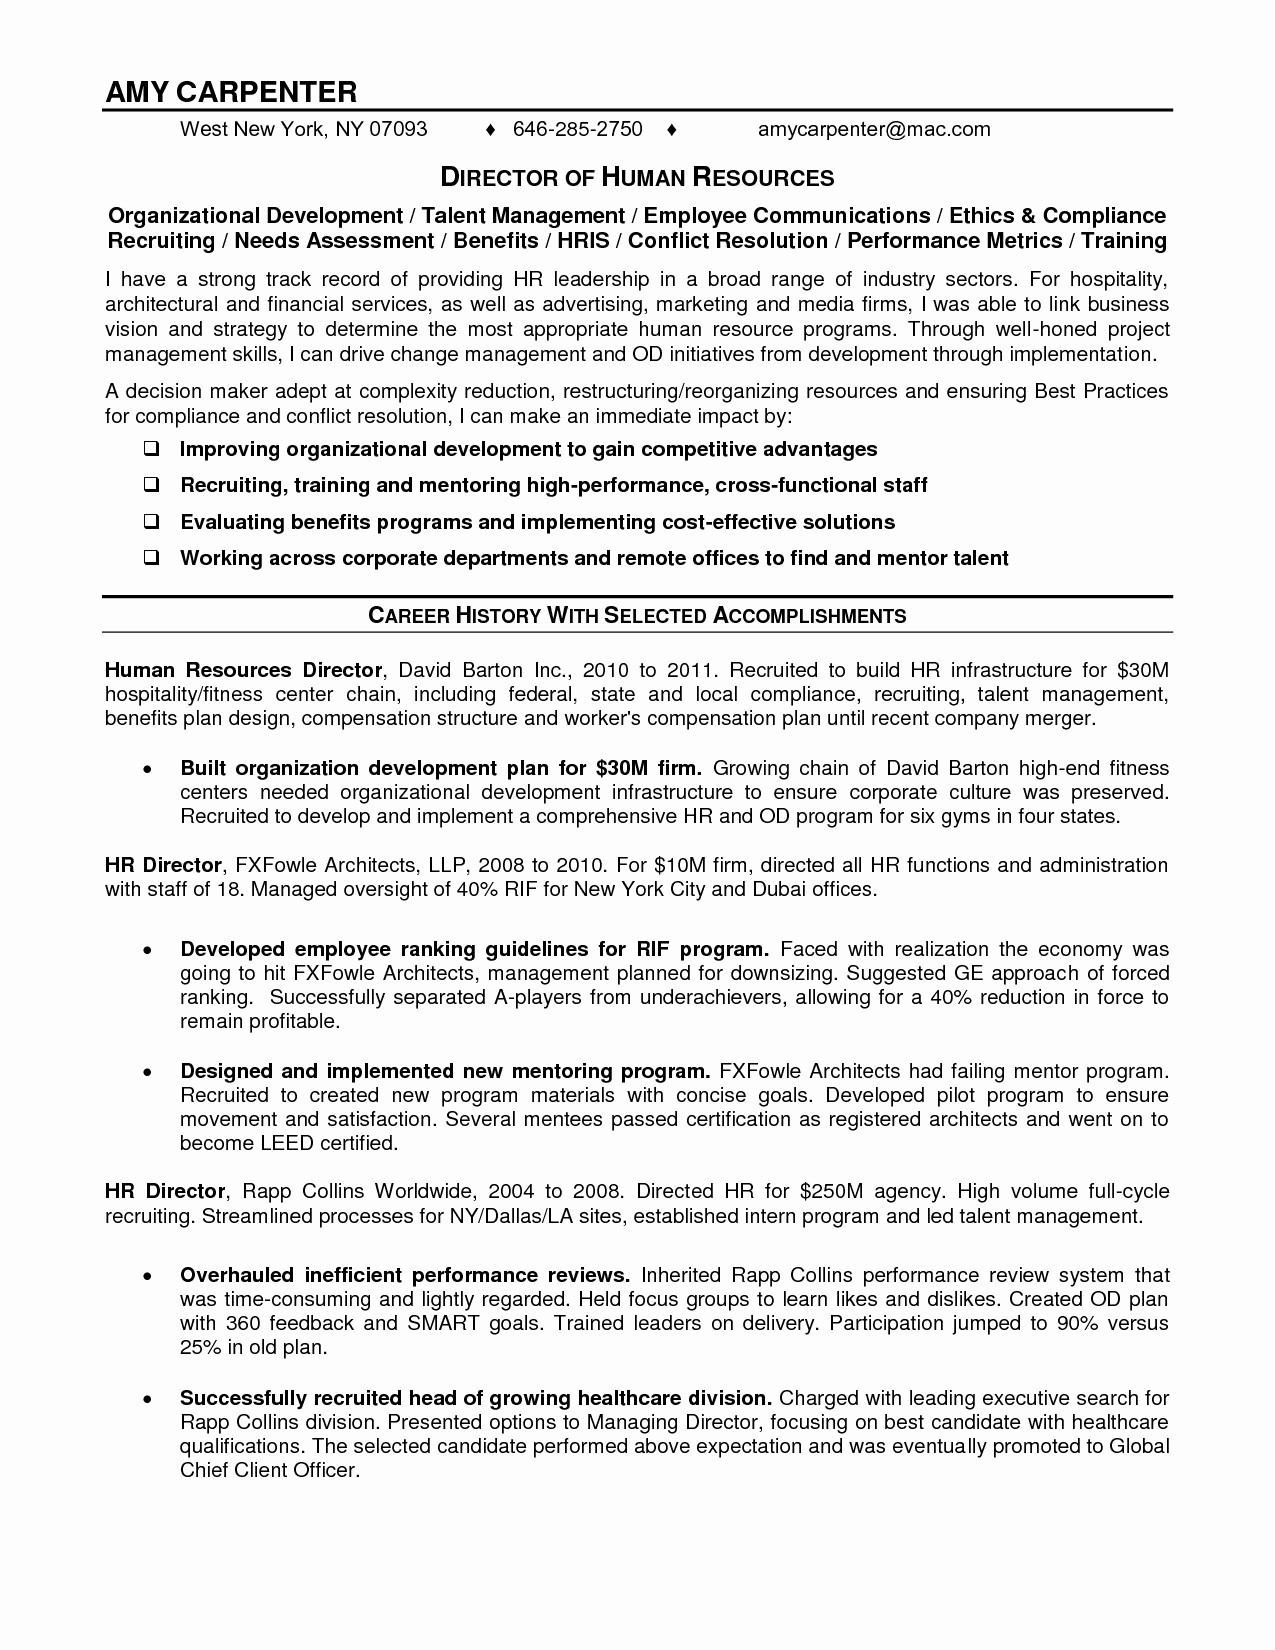 Fast Food Resume Objective - Objective Examples In A Resume Fresh Resume Objective Examples